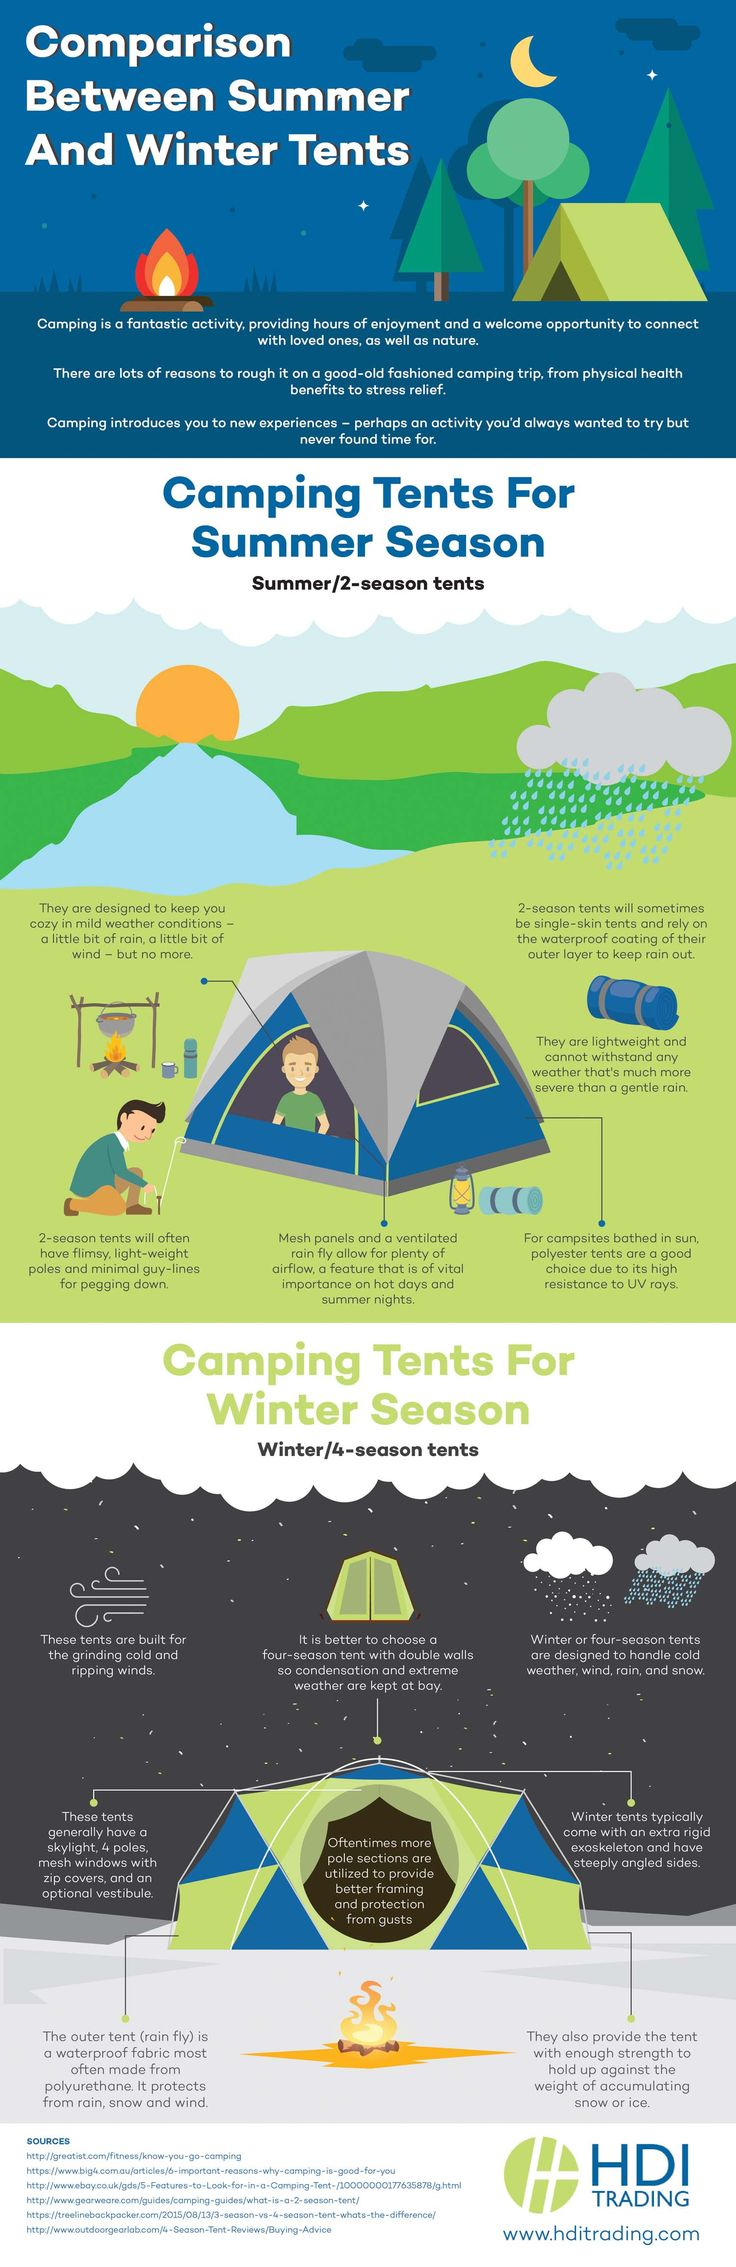 Comparison Between #Summer and #Winter #Tents - Do you fancy an infographic?  There are a lot of them online, but if you want your own please visit http://linfografico.com/en/prices/  Online girano molte infografiche, se ne vuoi realizzare una tutta tua visita http://www.linfografico.com/prezzi/